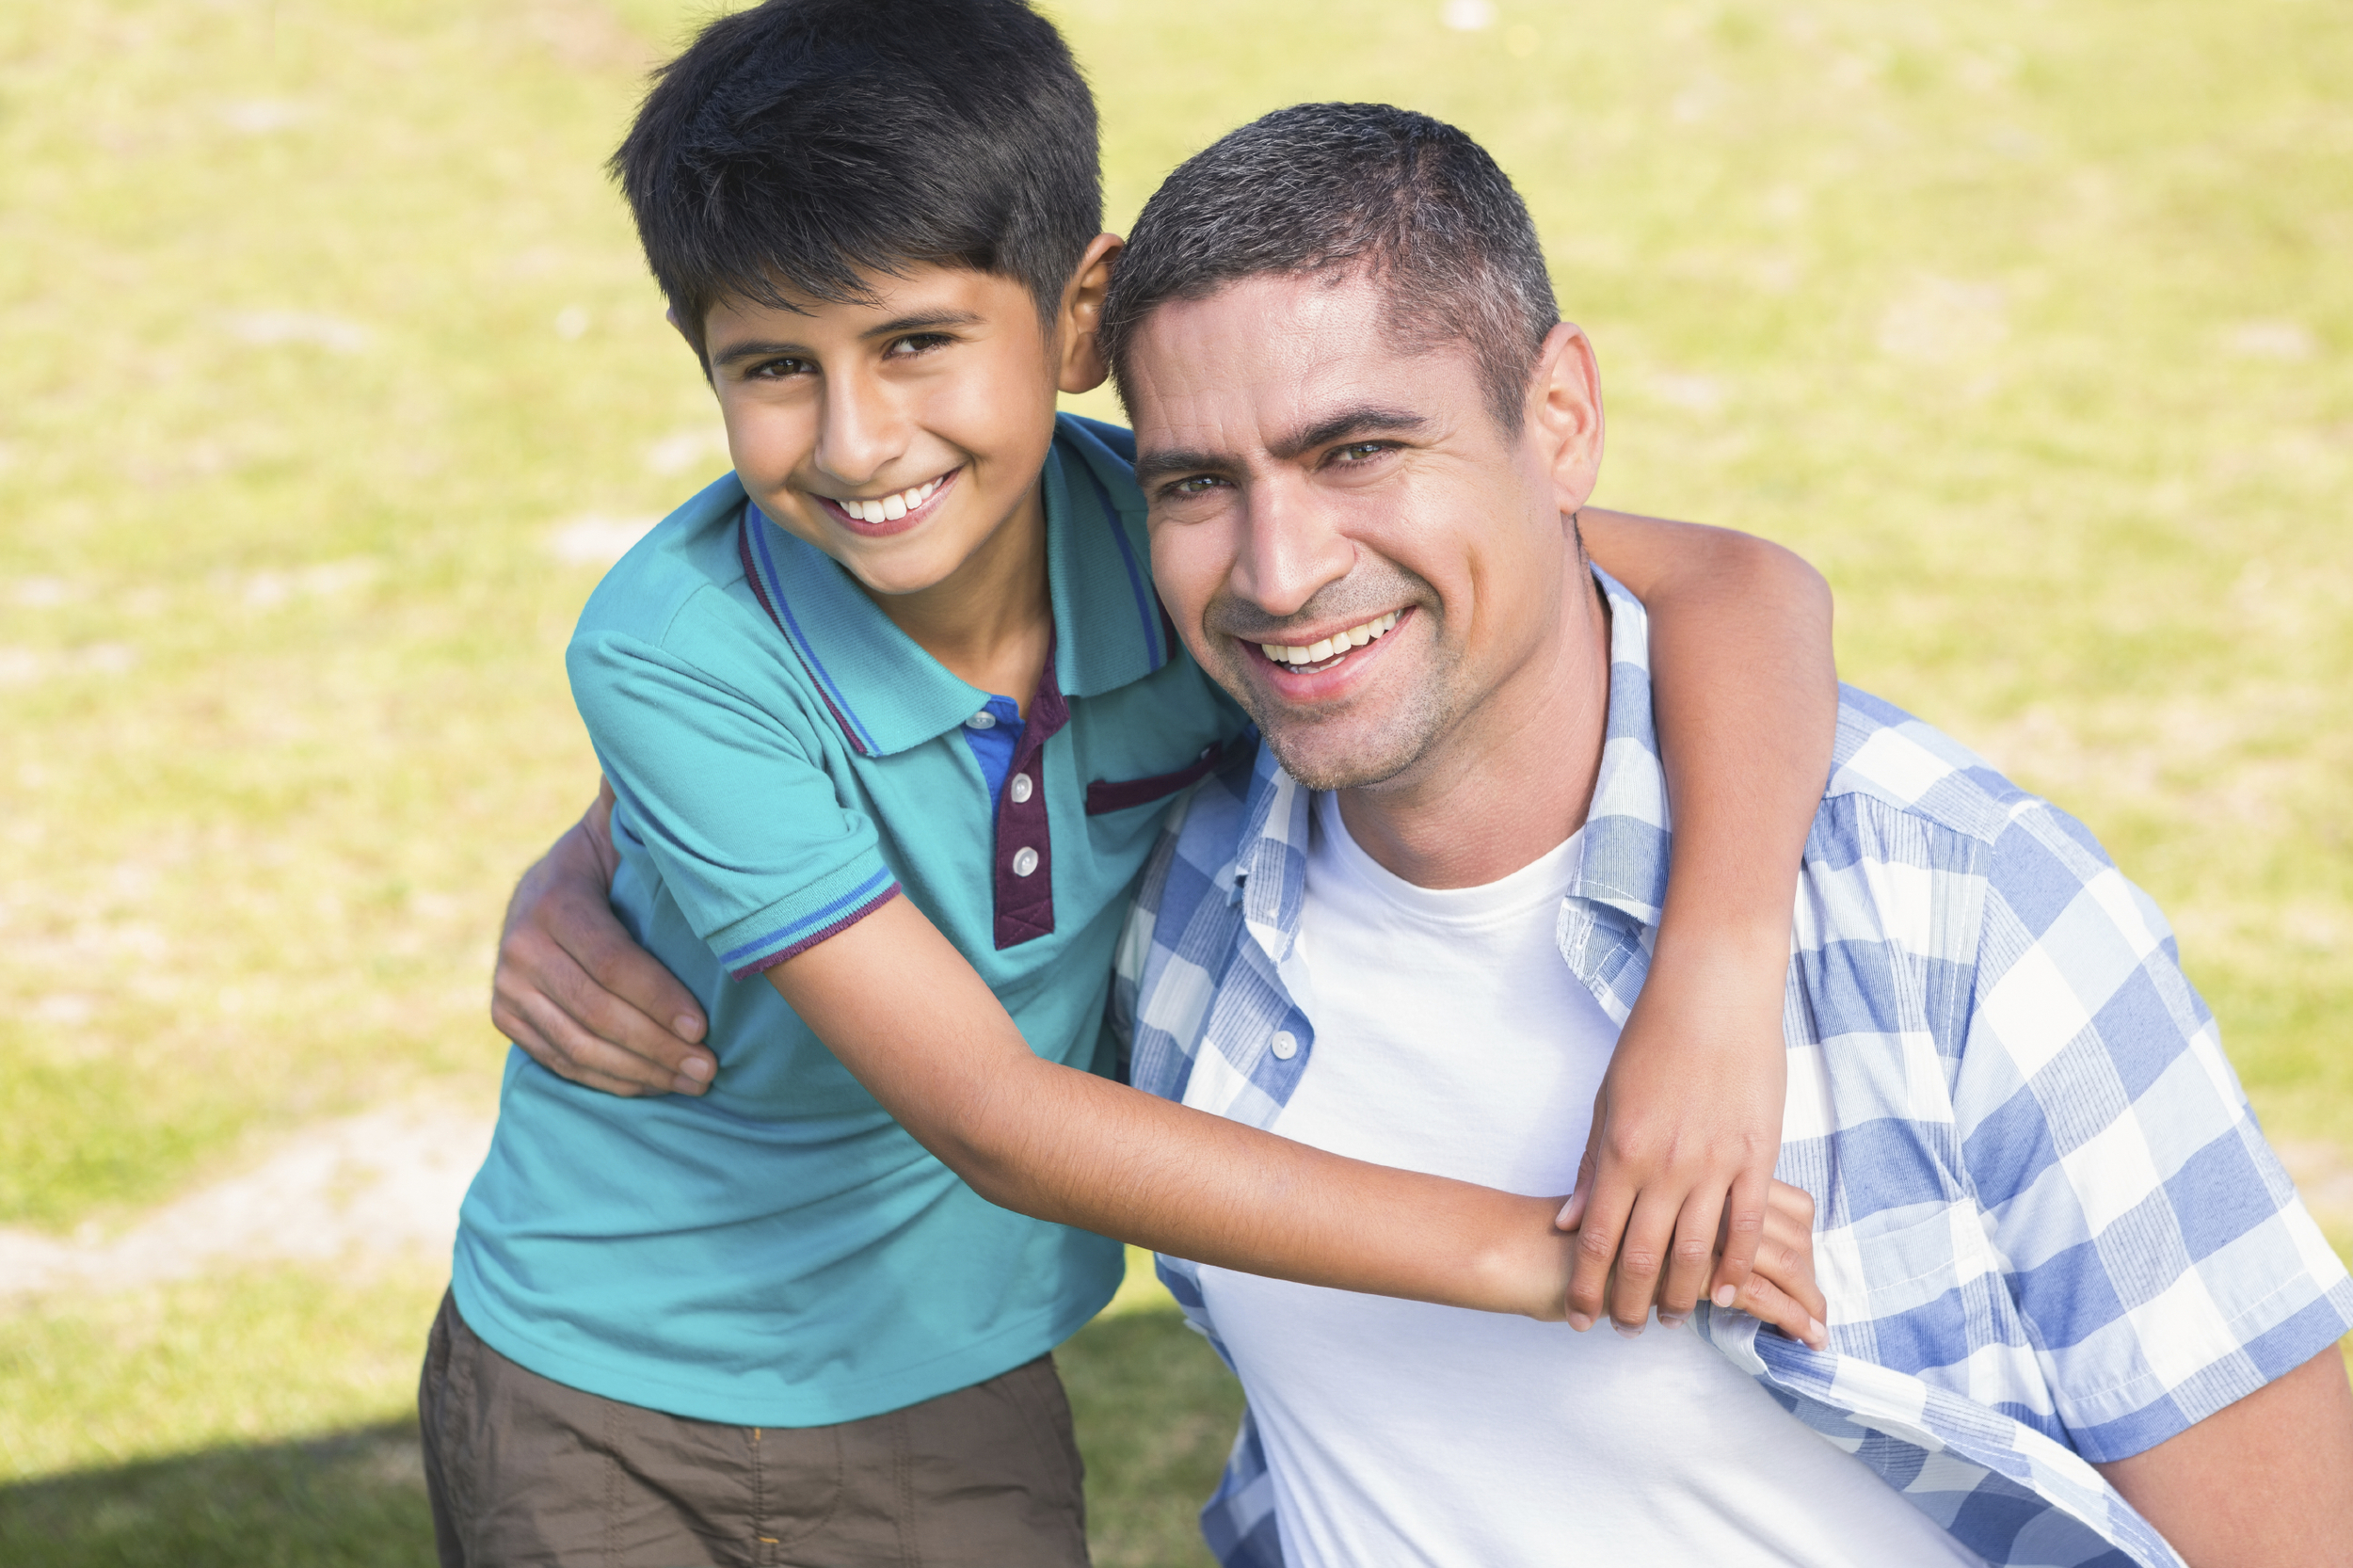 Smiling son with his dad outside